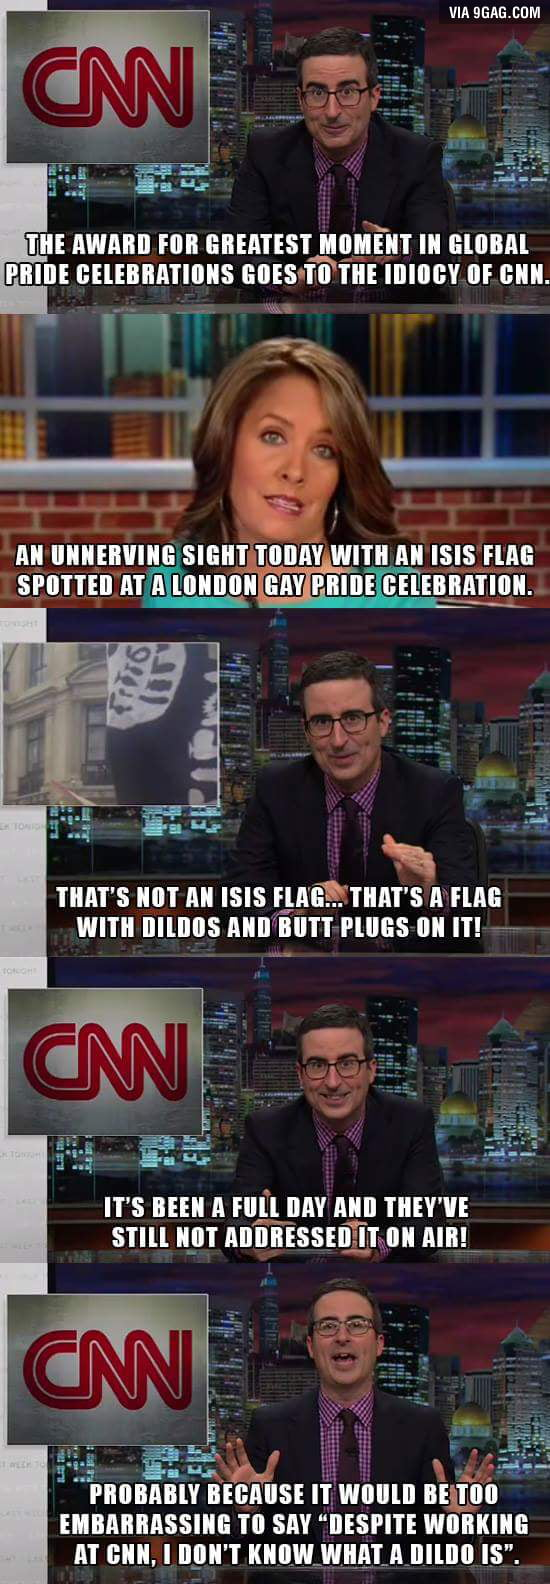 John Oliver strikes again